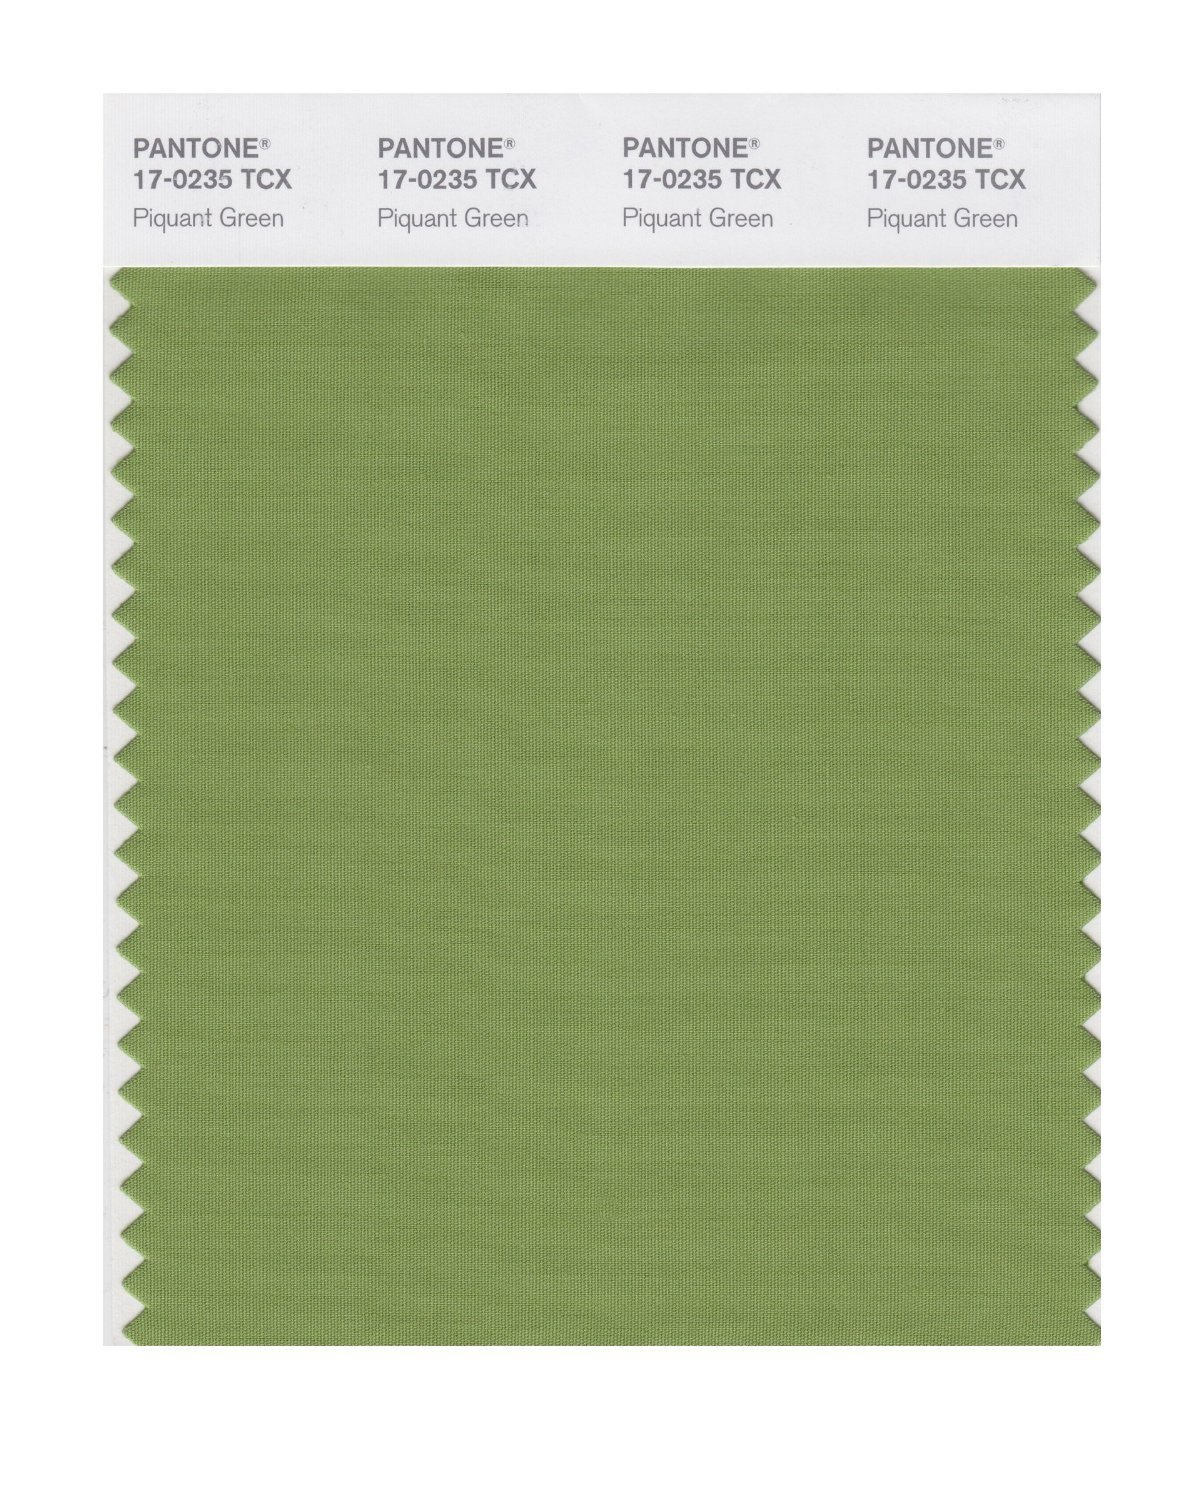 Pantone Smart Swatch 17-0235 Piquant Green